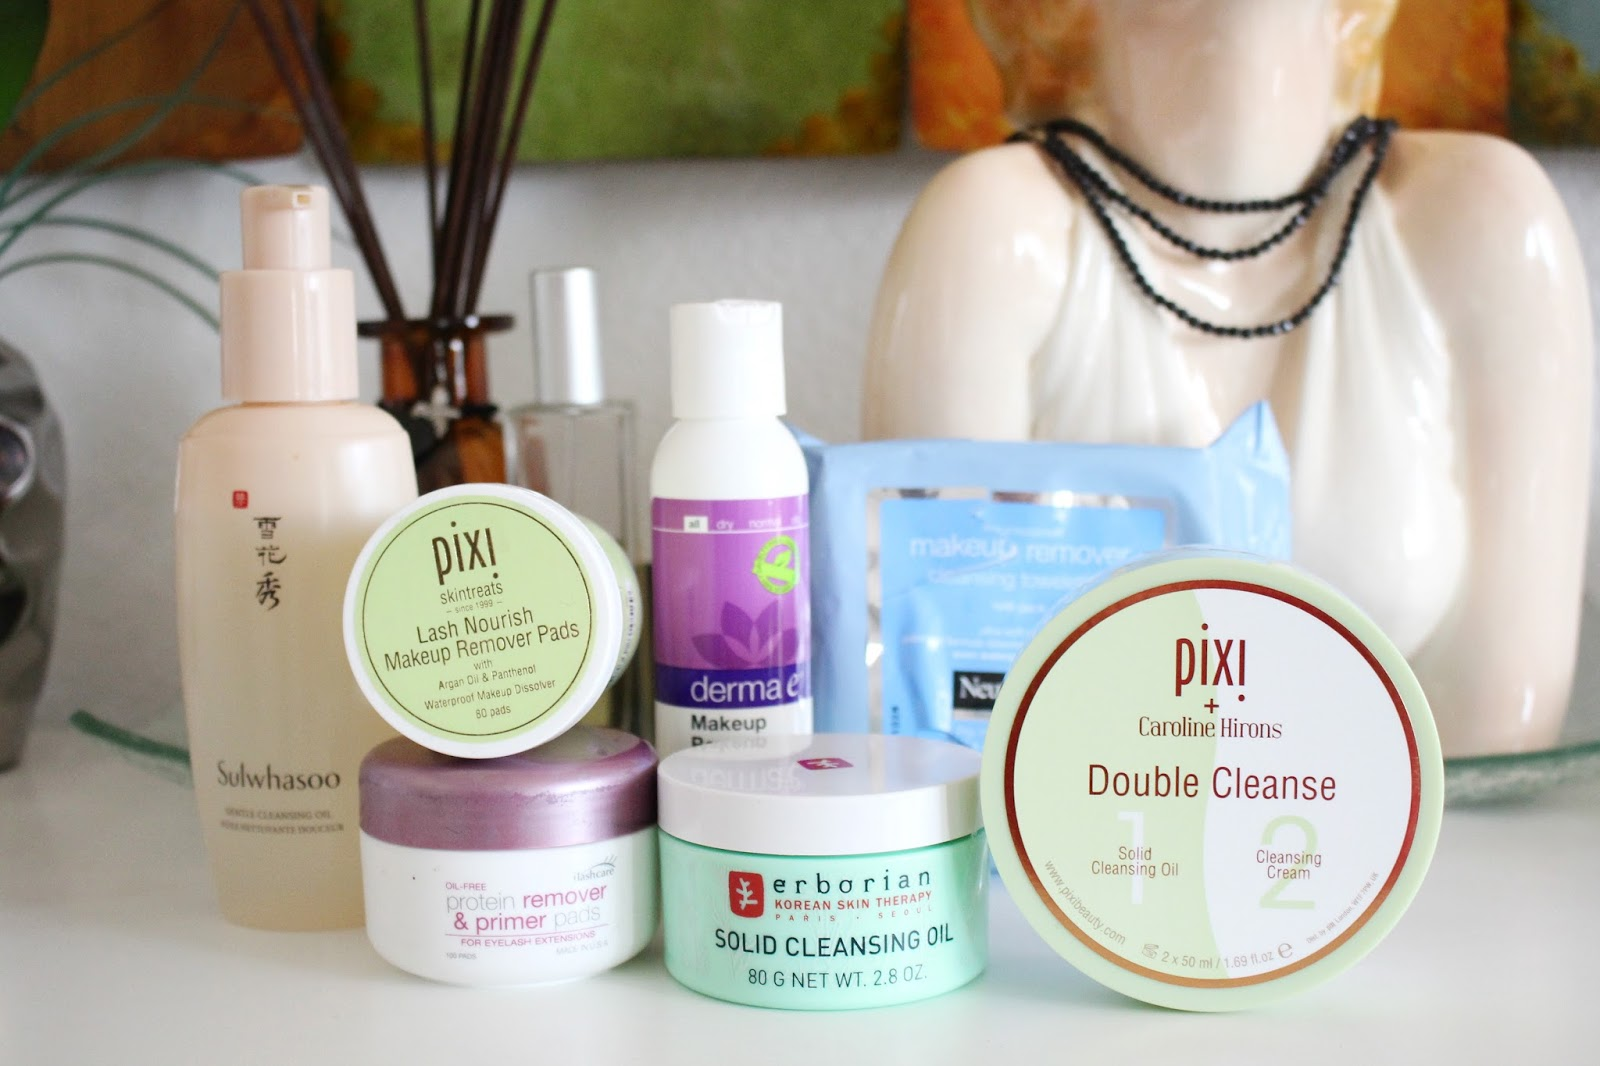 gentle makeup removers, Pixi Caroline Hirons Double Cleanse, Pixi Nourishing Cleansing Balm, Erborian Solid Cleansing Oil, Sulwhasoo Gentle Cleansing Oil, derma e makeup remover